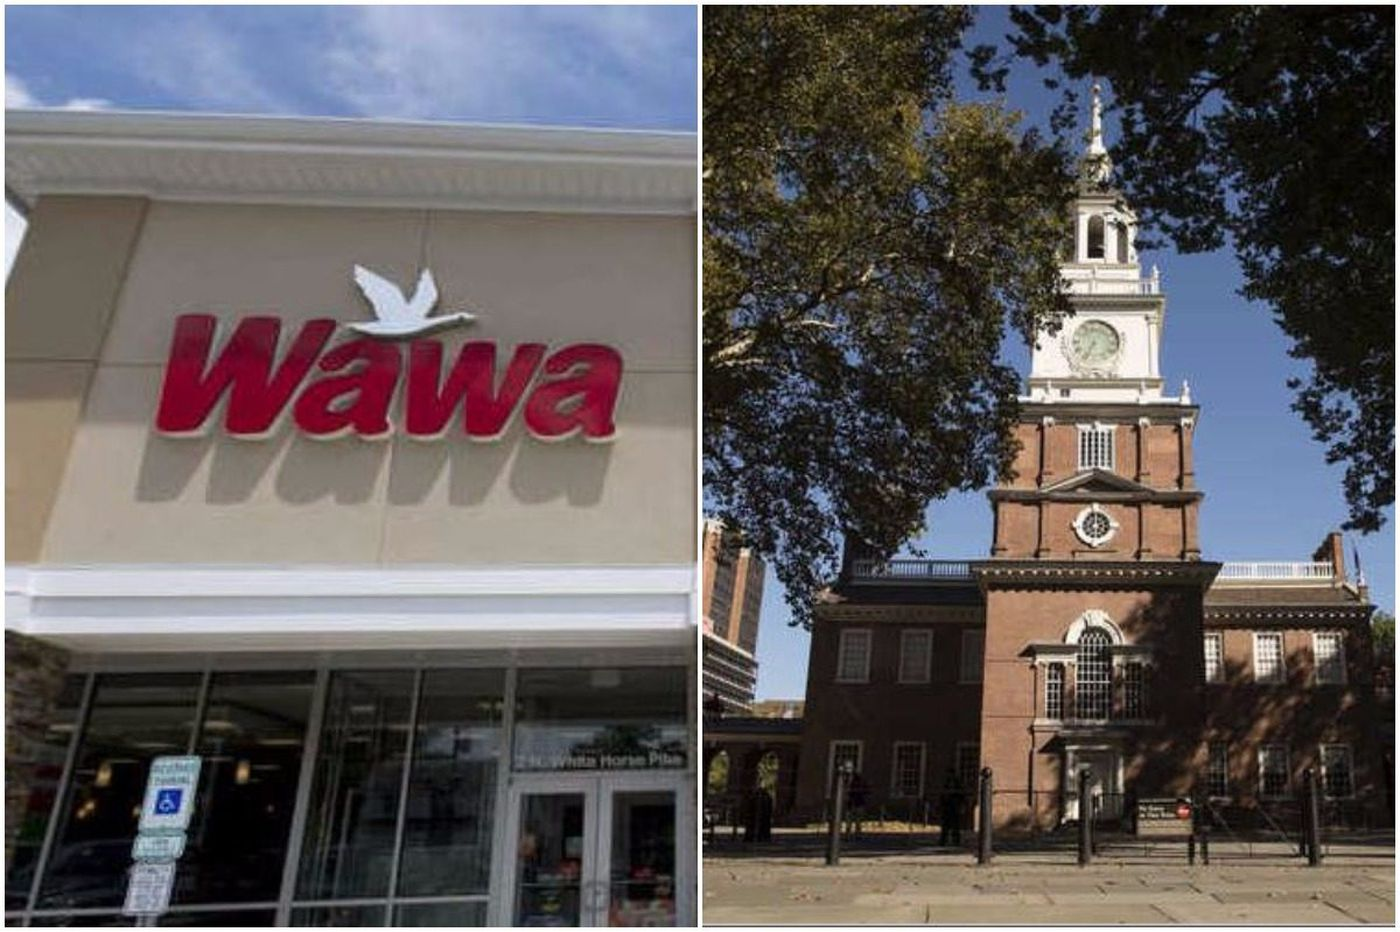 Wawa the people: Chain eyeing location across from Independence Hall